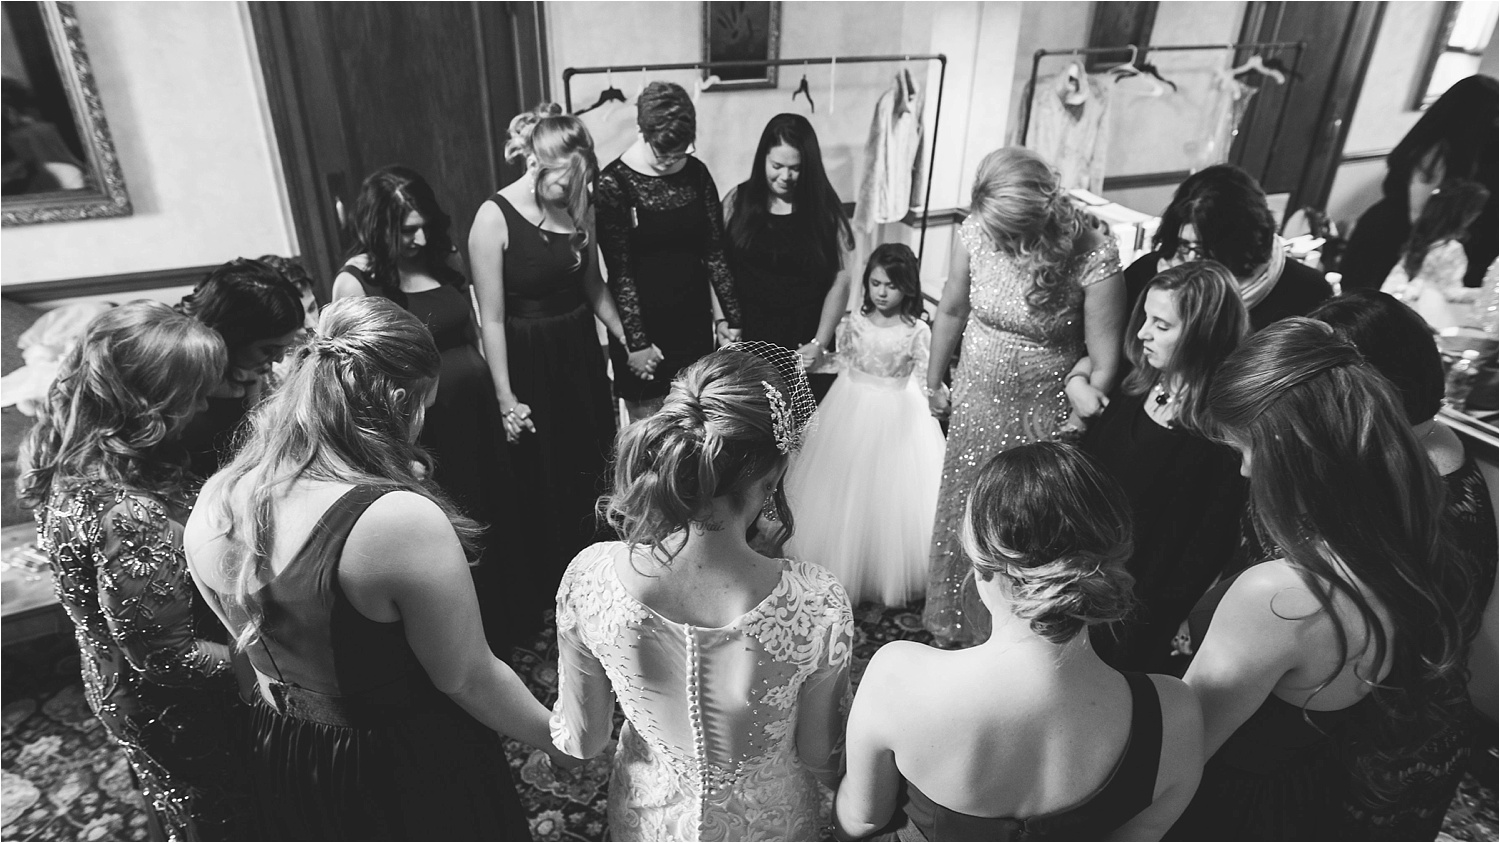 Praying before the ceremony. <3